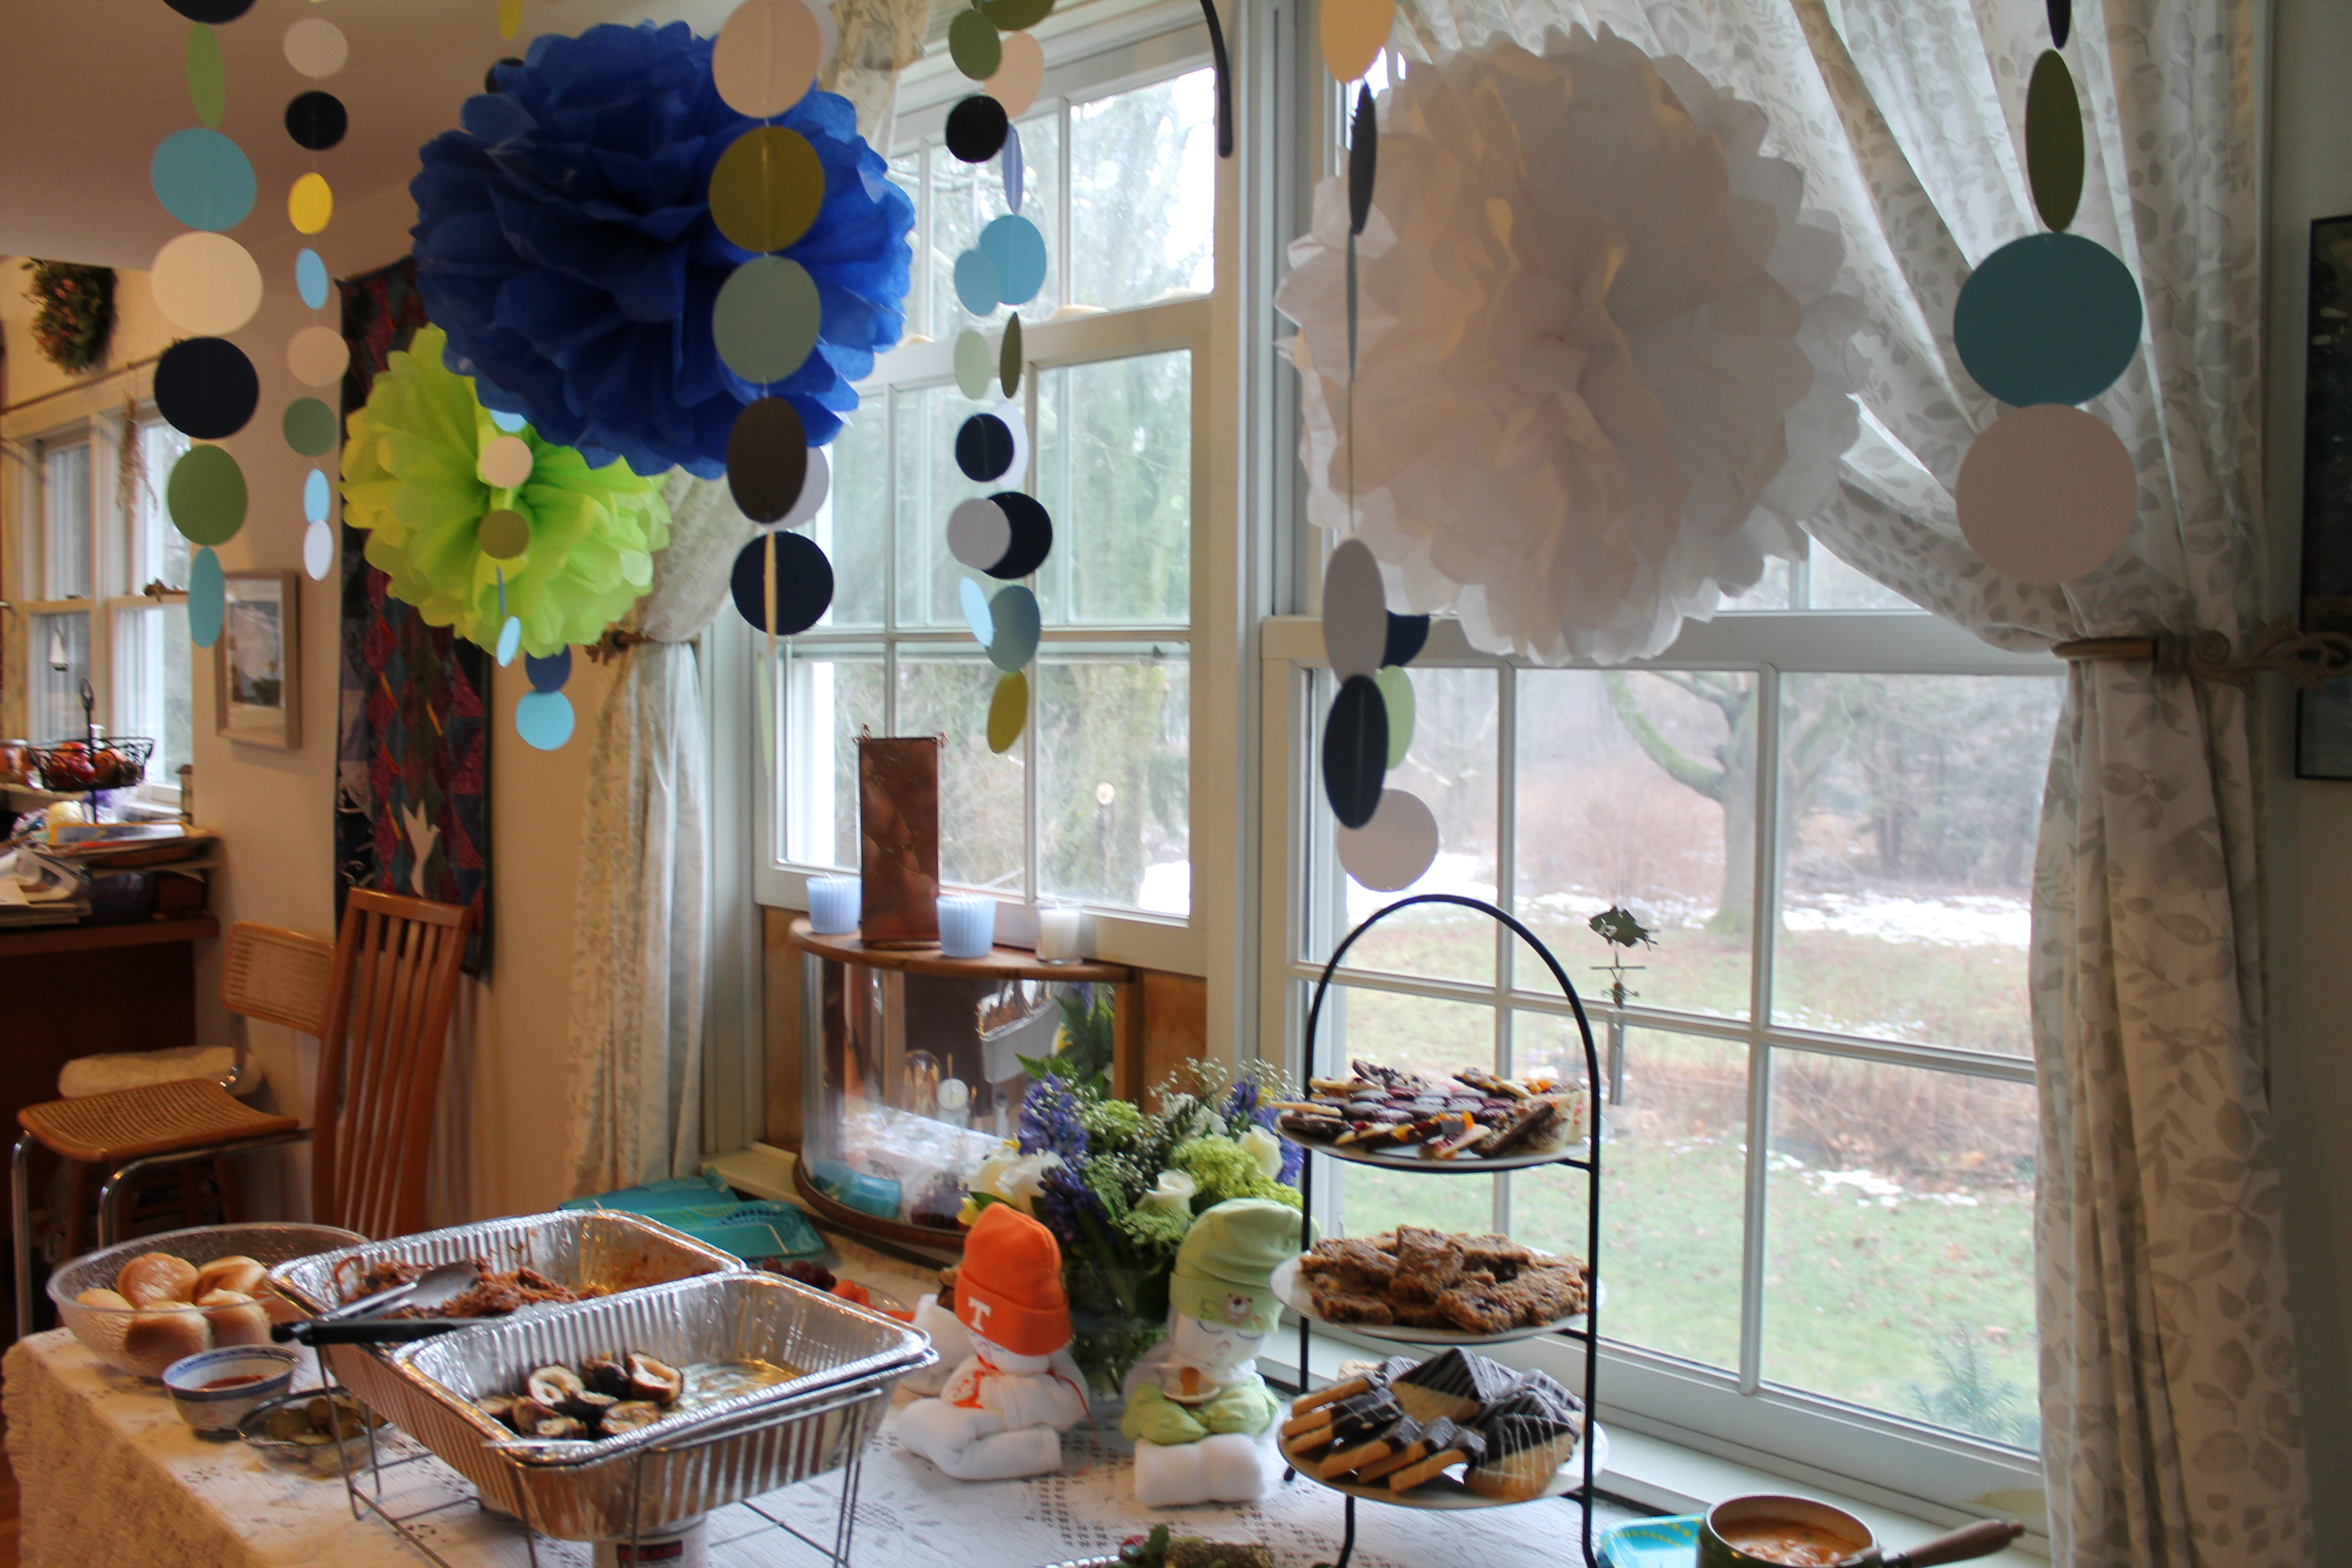 Showers and Tea Parties | The Delicious Dish